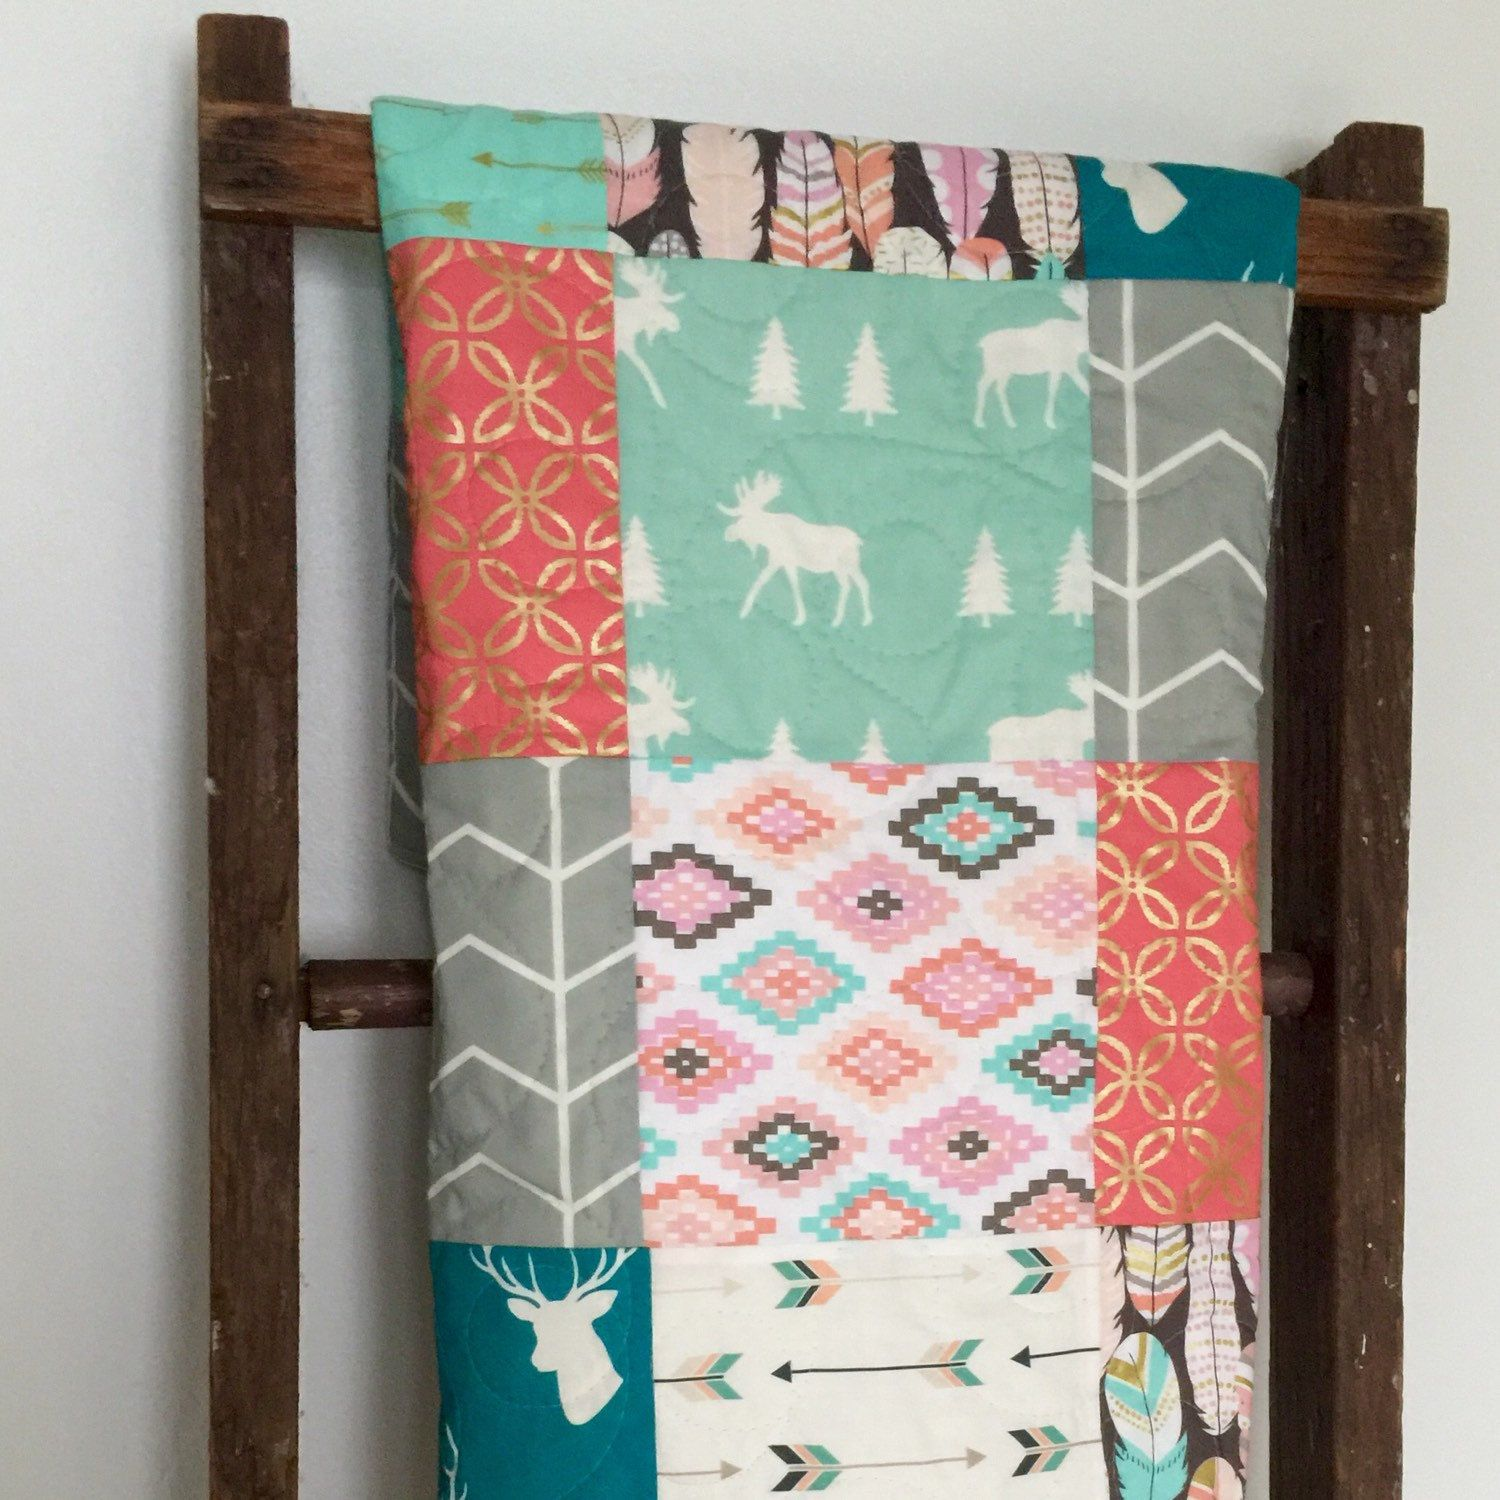 Another new quilt!  Great colors and even a moose for the girls... : )  Happy Thanksgiving everyone!  Hope you have a wonderful day with family and friends.